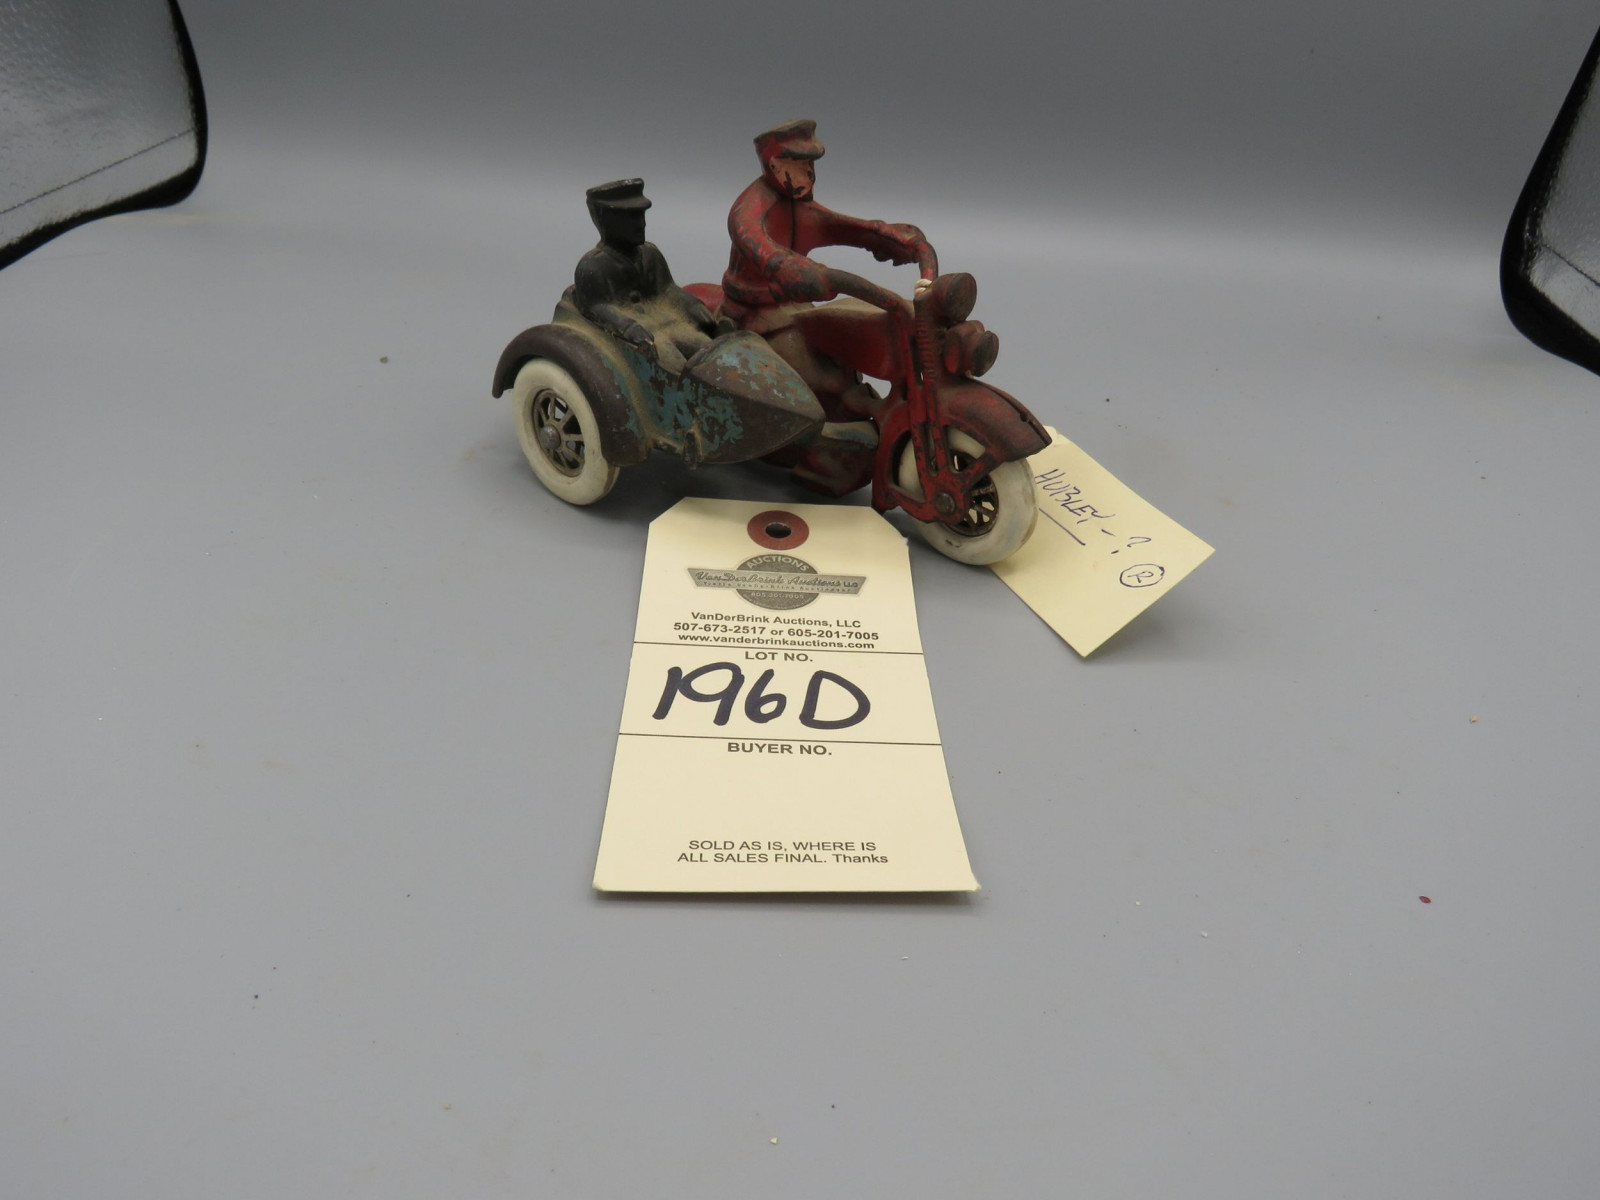 Hubley Cast iron Motorcycle , Harley Davidson with Side Car, 2 Policeman with rubber wheels Approx. 5 1/4 inches - Image 1